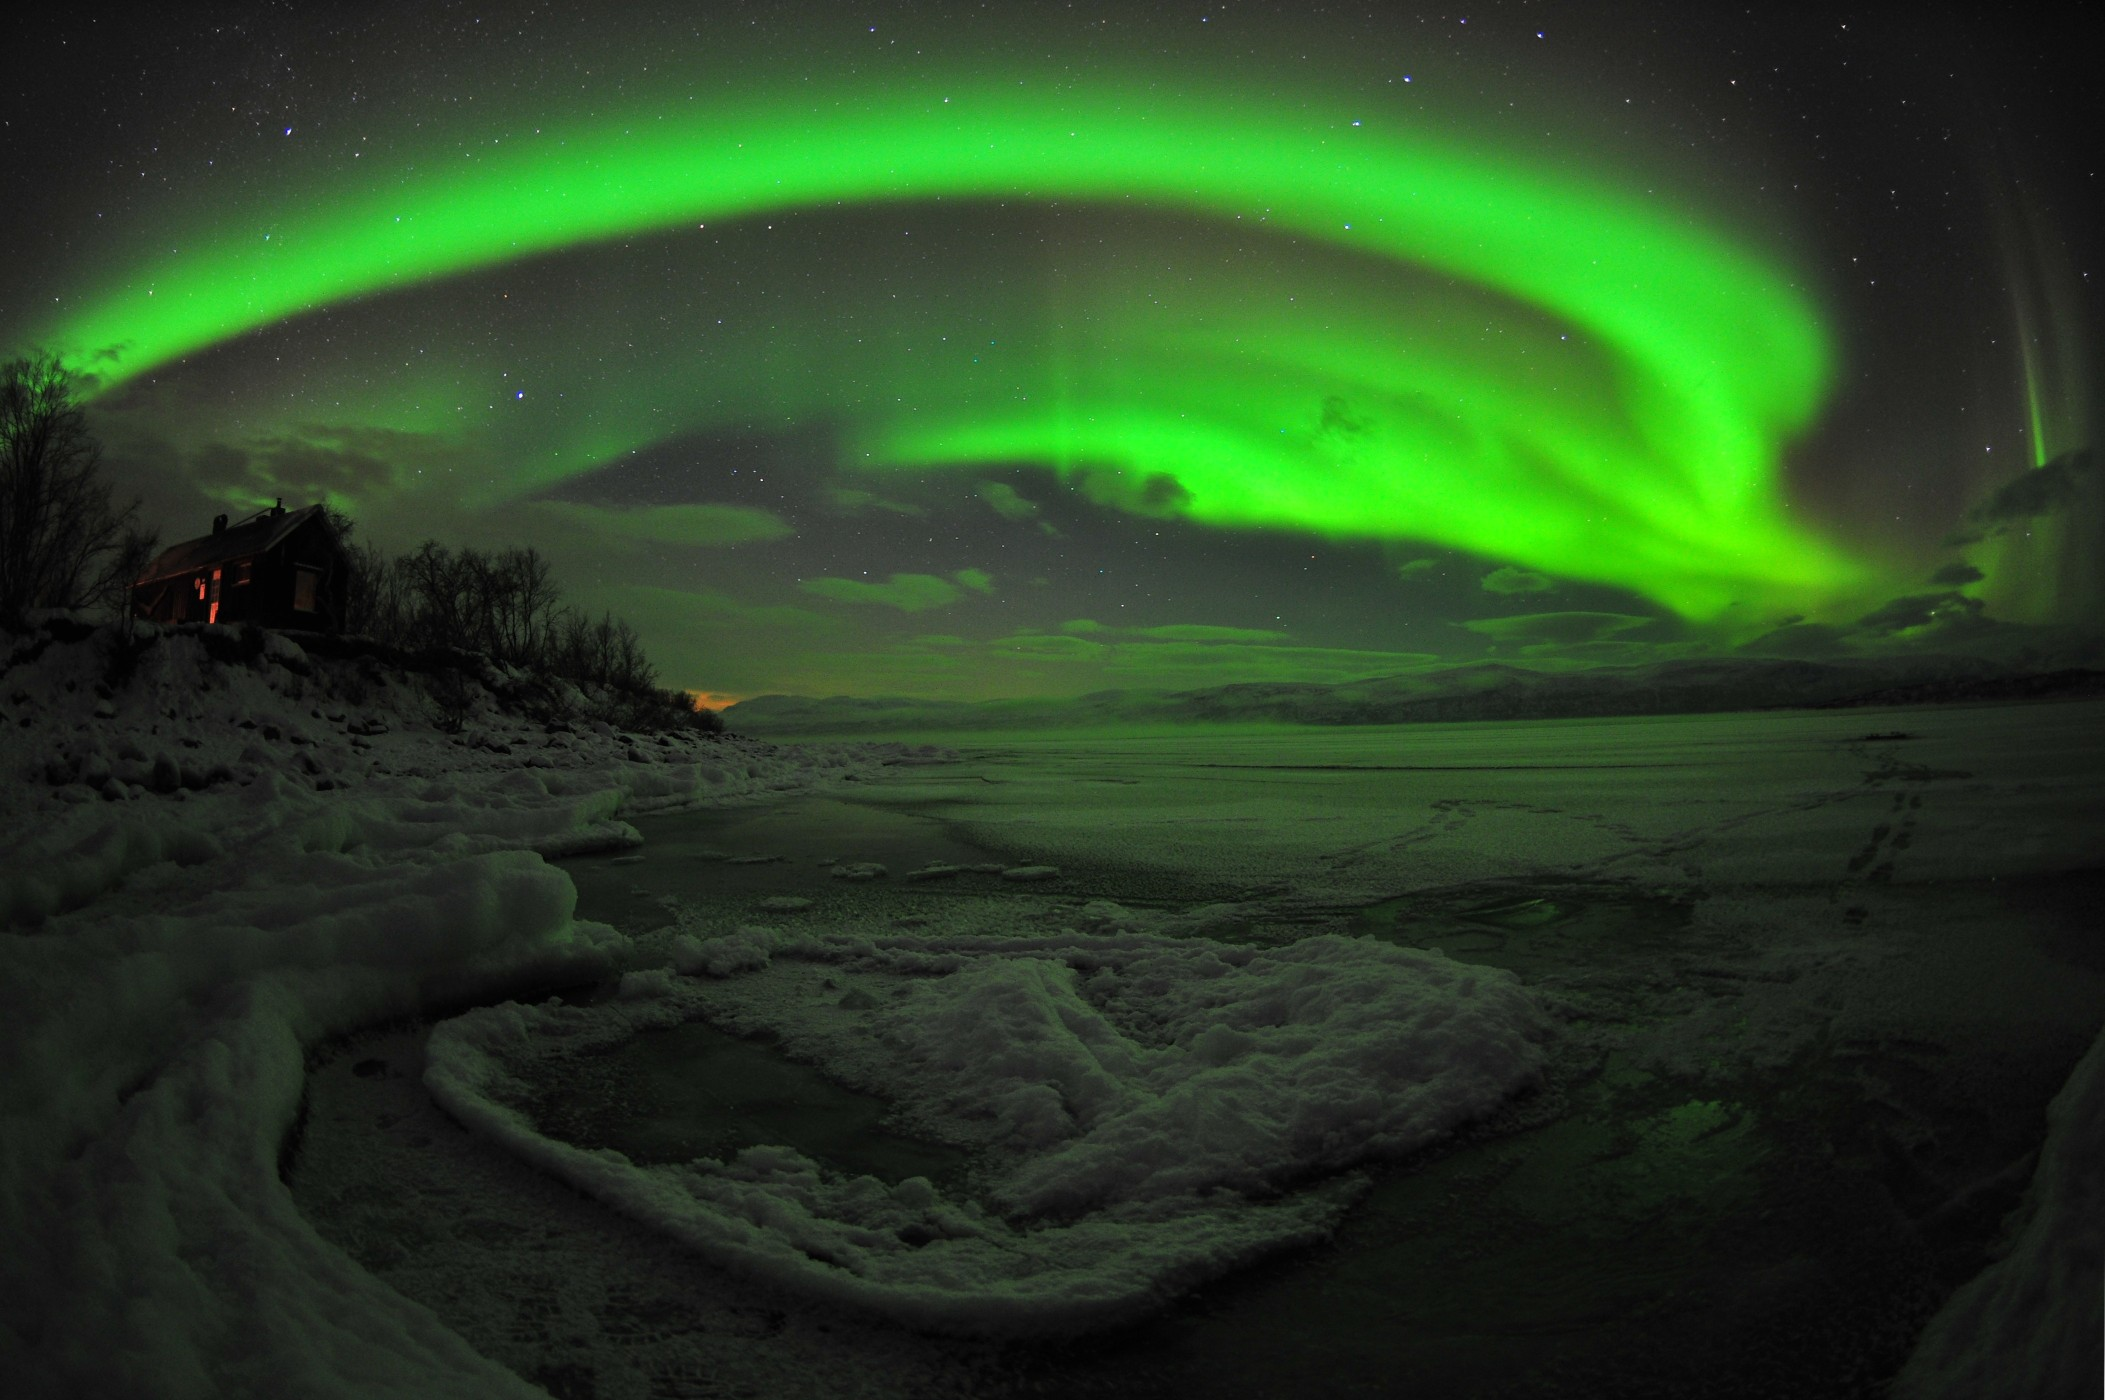 http://upload.wikimedia.org/wikipedia/commons/f/f1/Aurora-abisko-fisheye.jpg